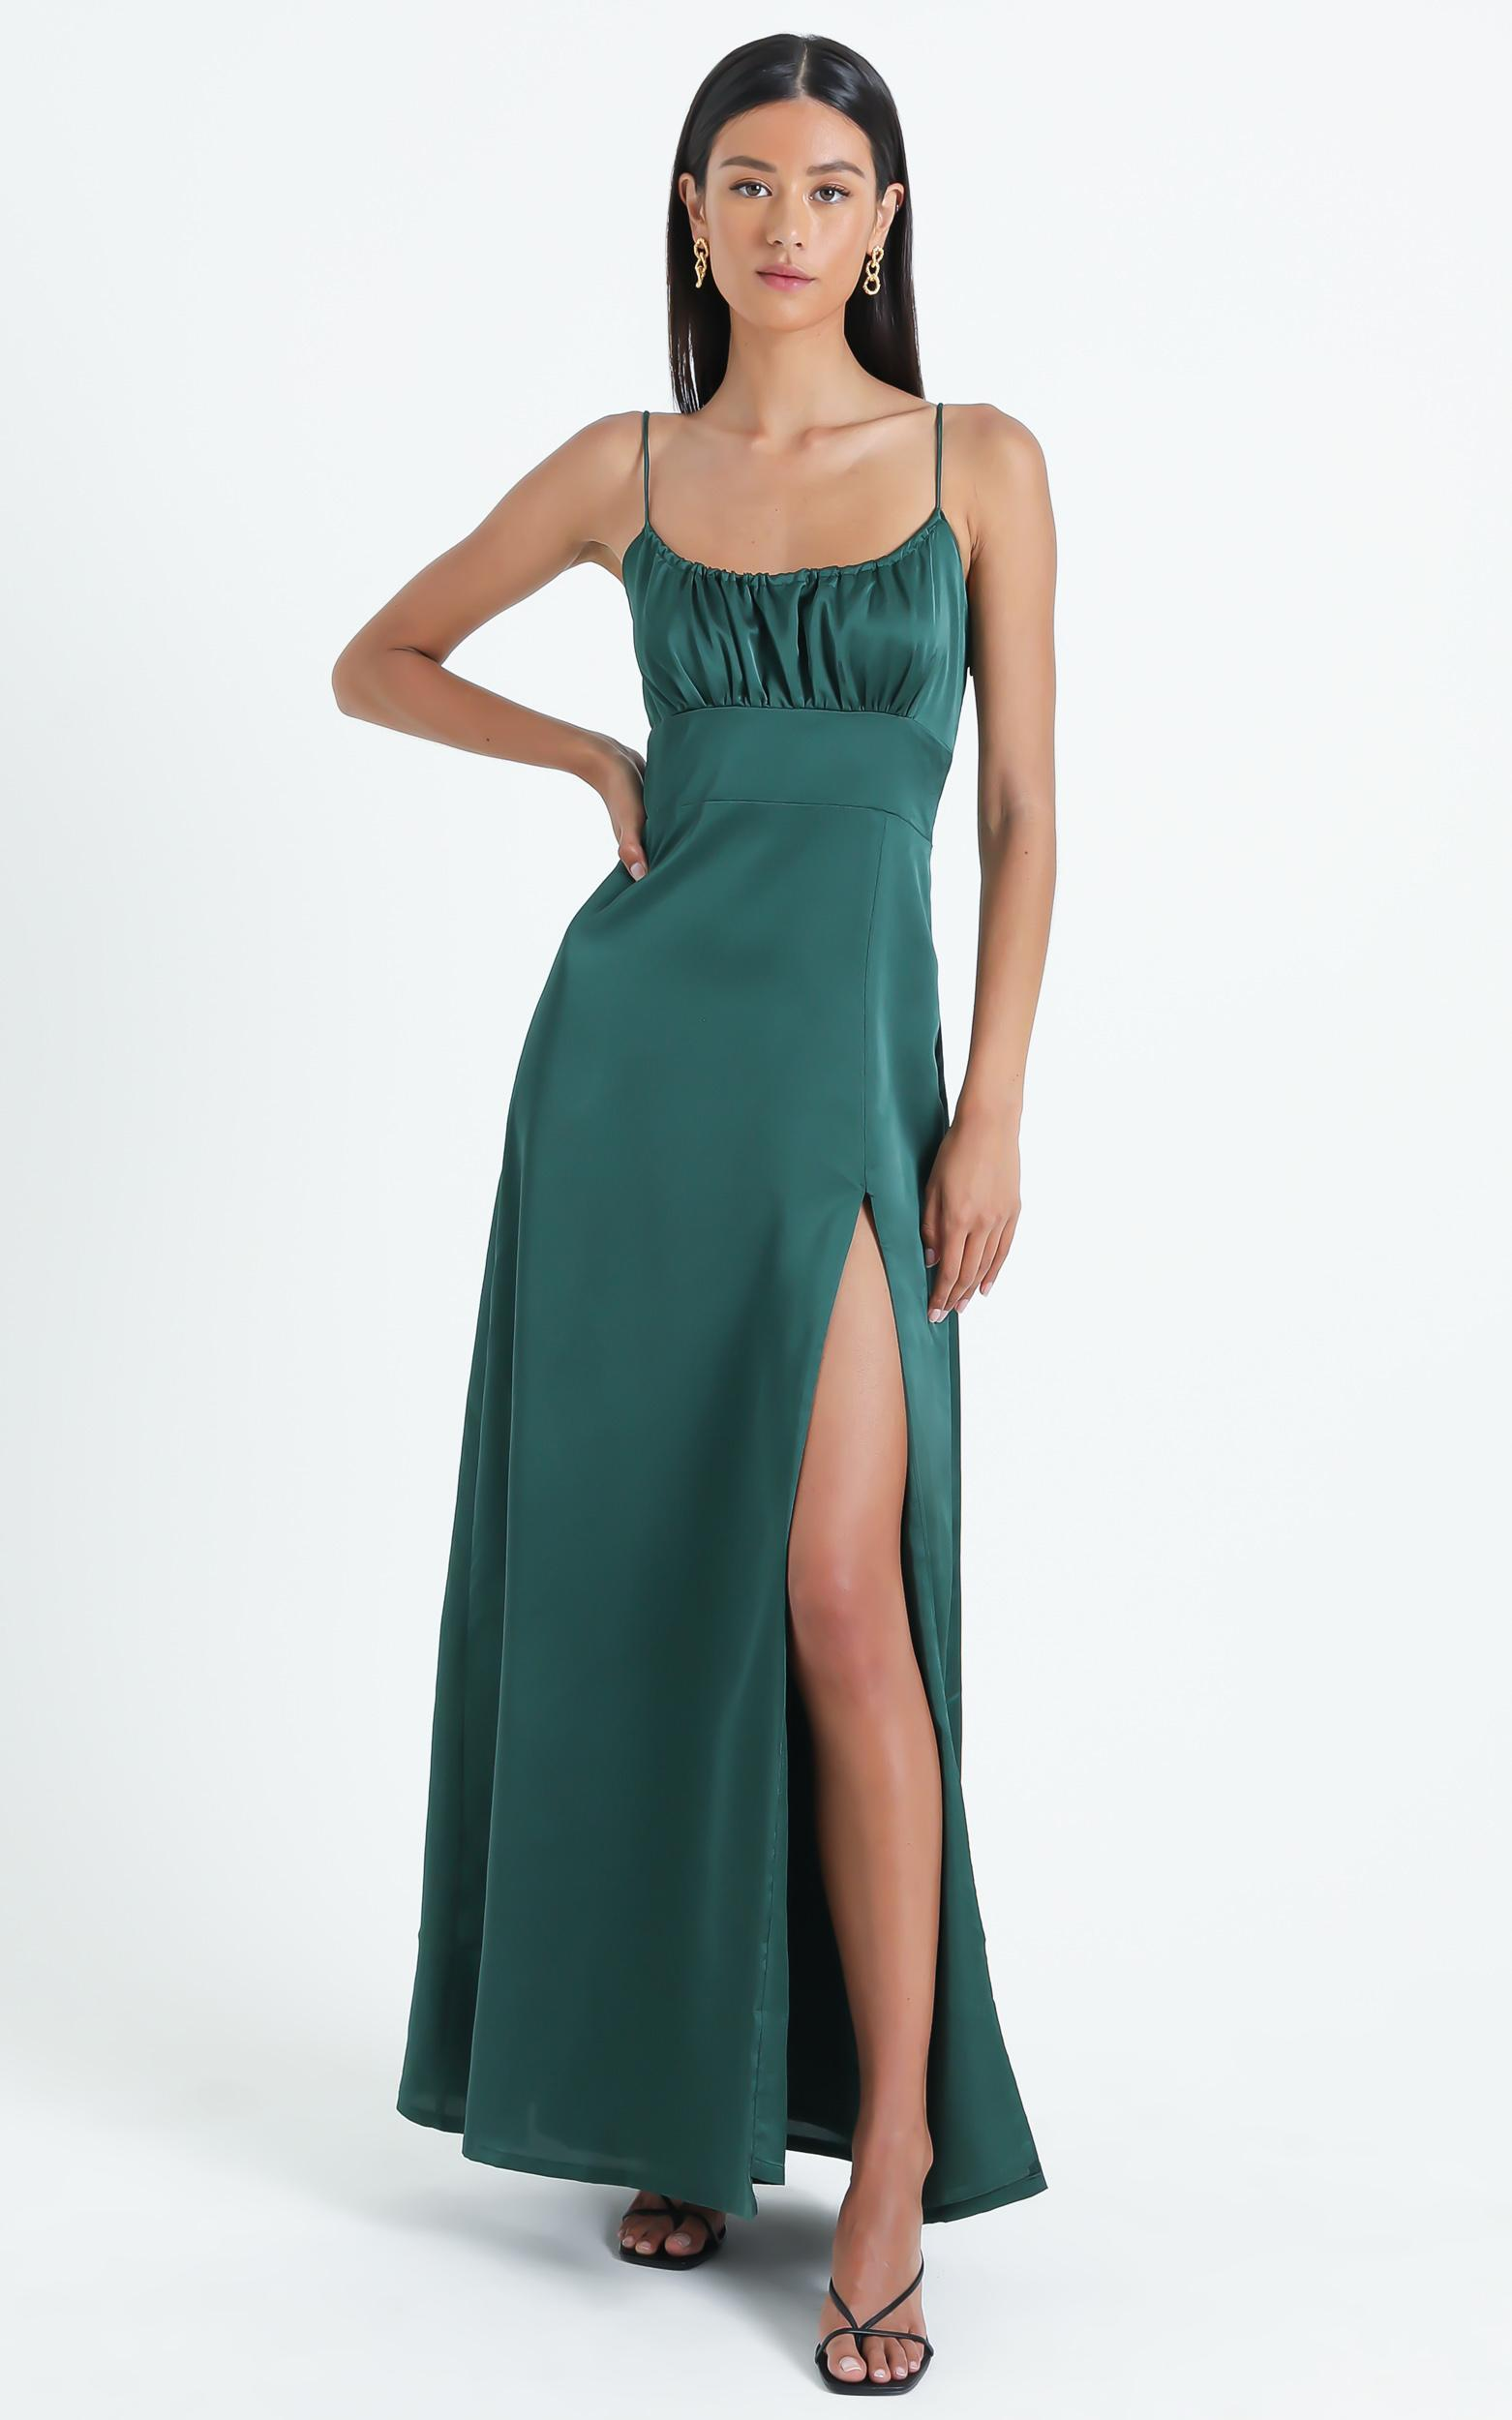 Simply Want You Dress in Emerald - 6 (XS), GRN7, hi-res image number null